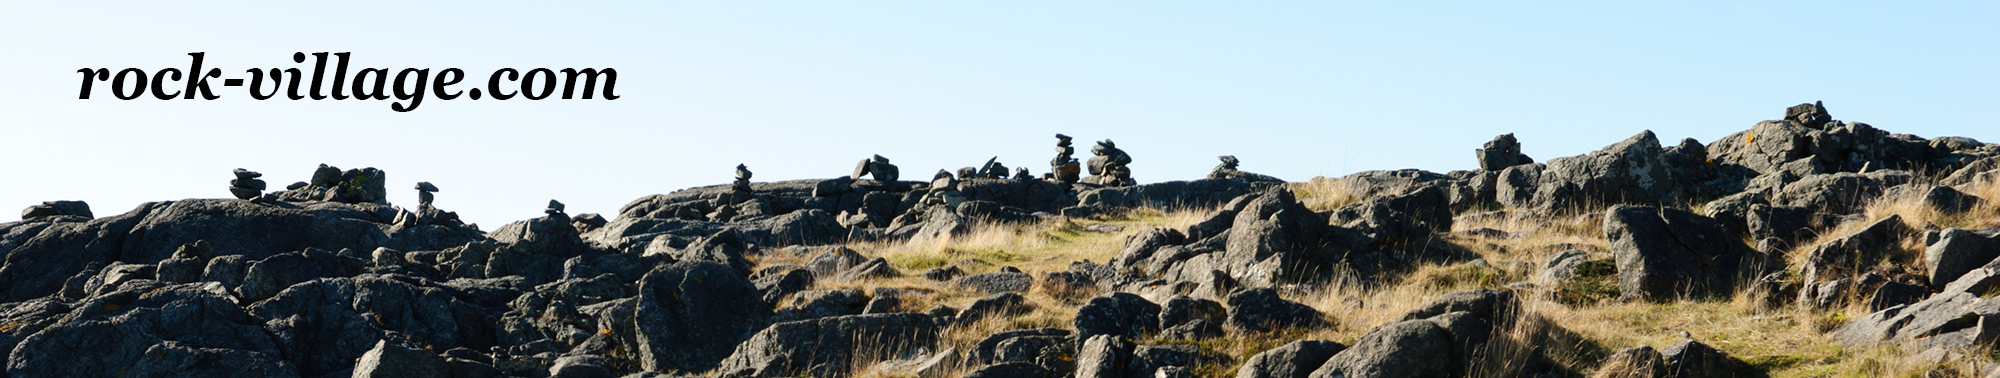 Rock Village Website banner picture, a rocky area with cairns